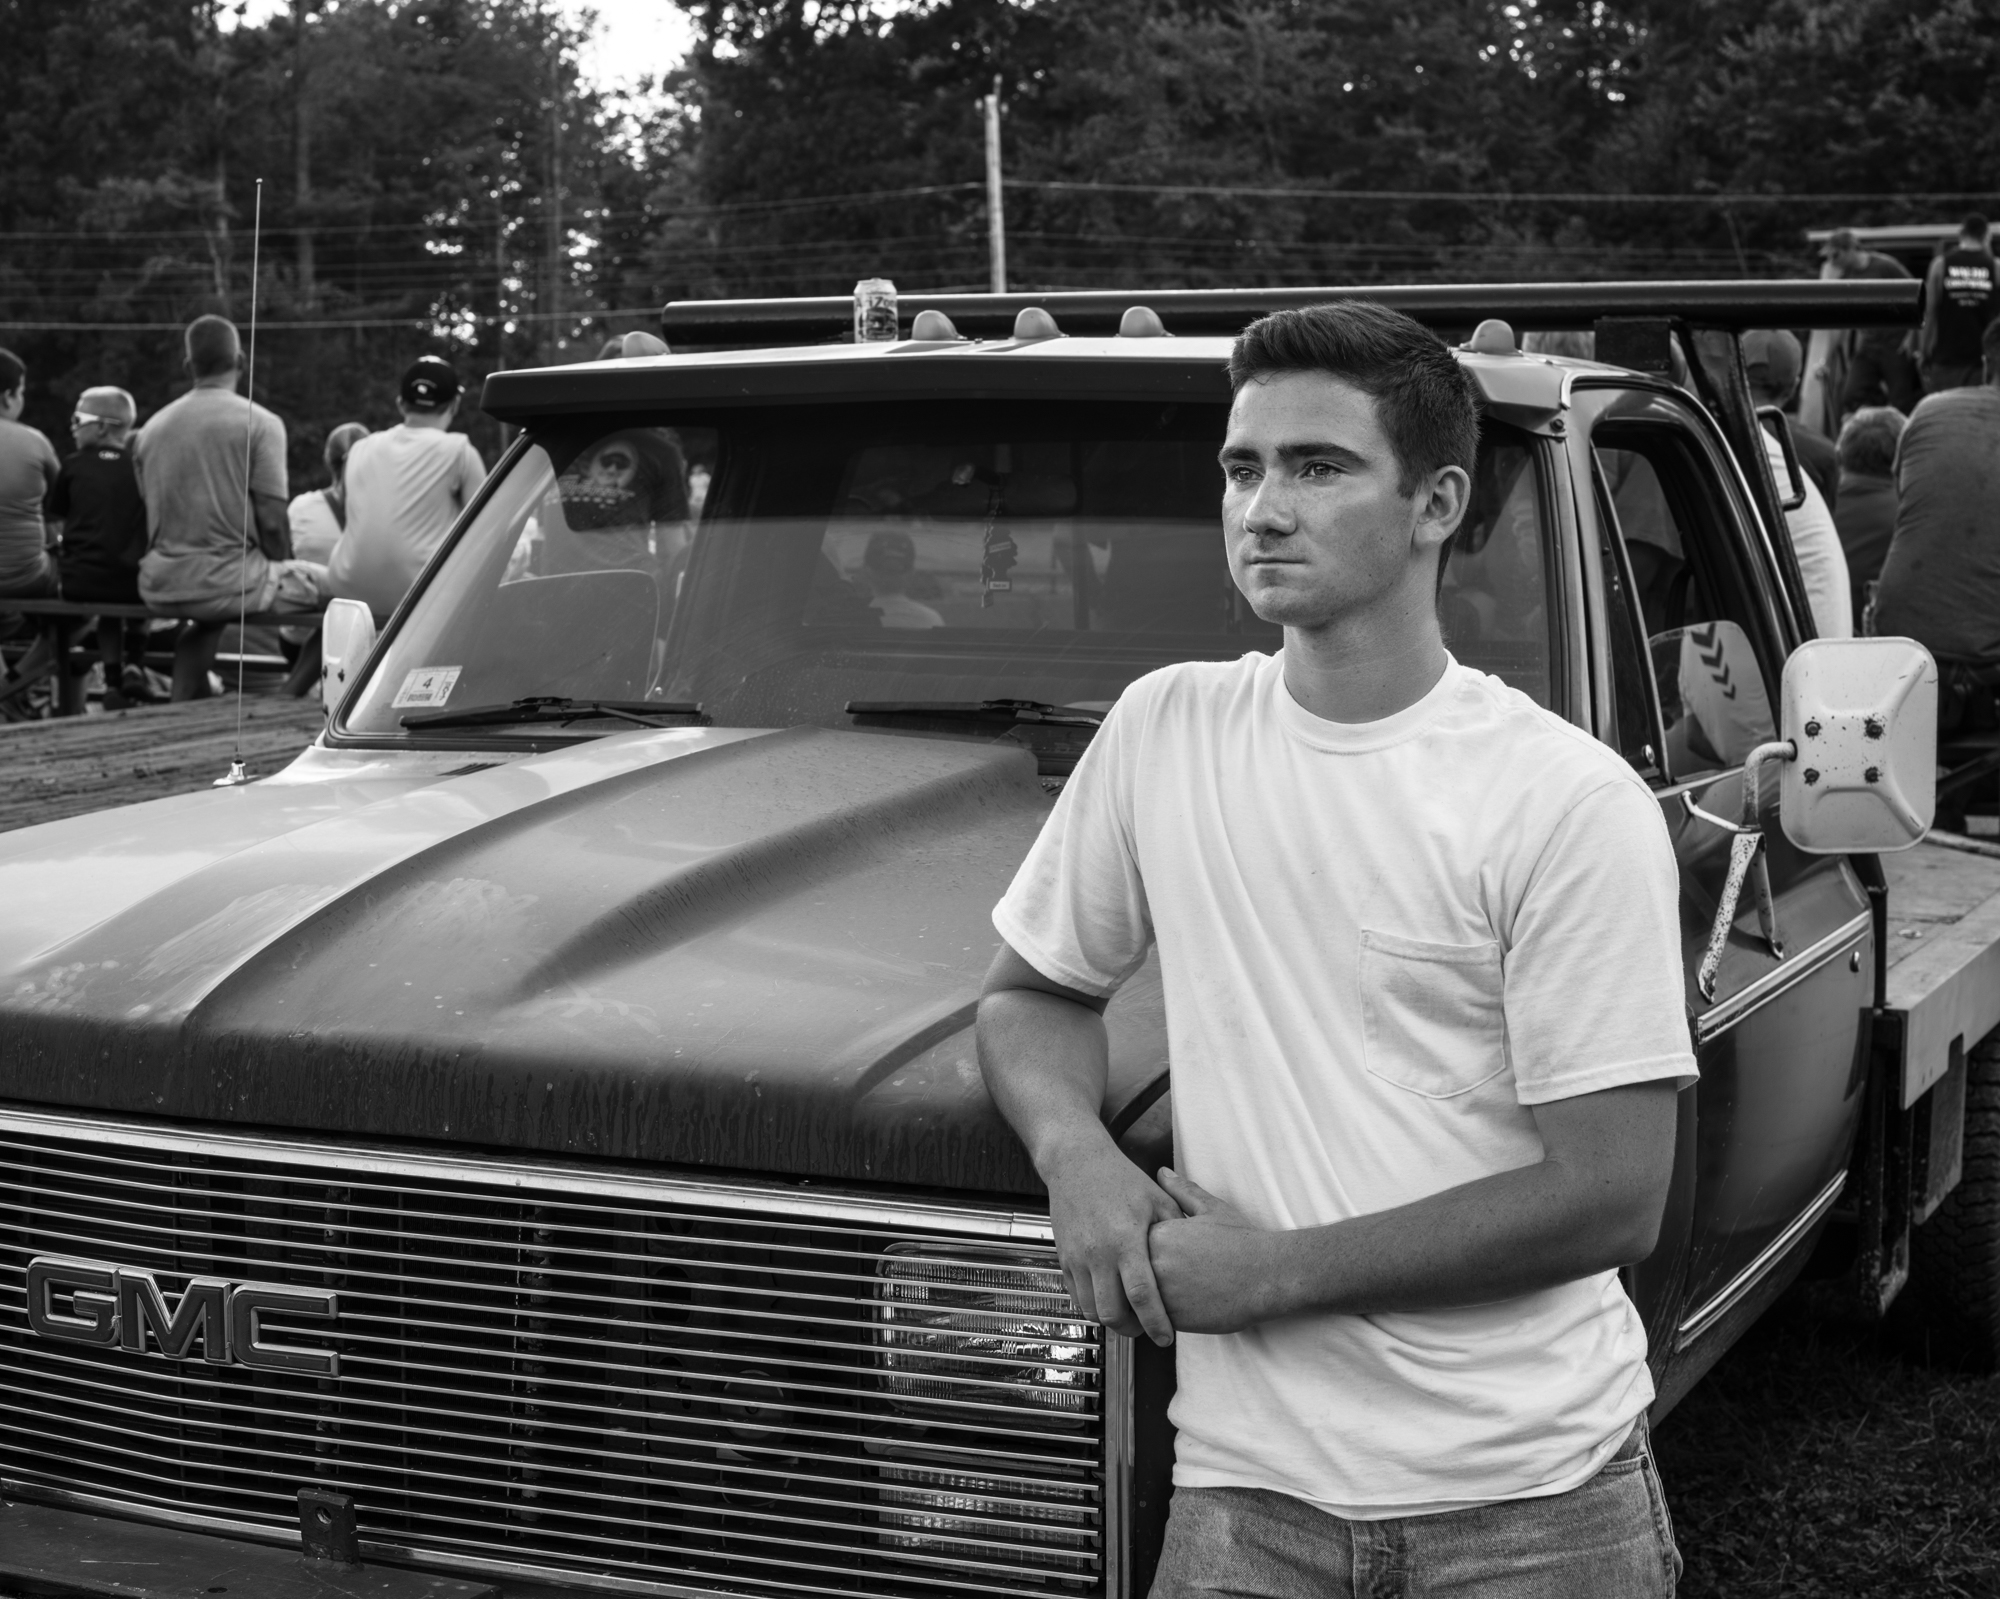 Chris Lassard with his GMC truck at the Wesfield Fair.